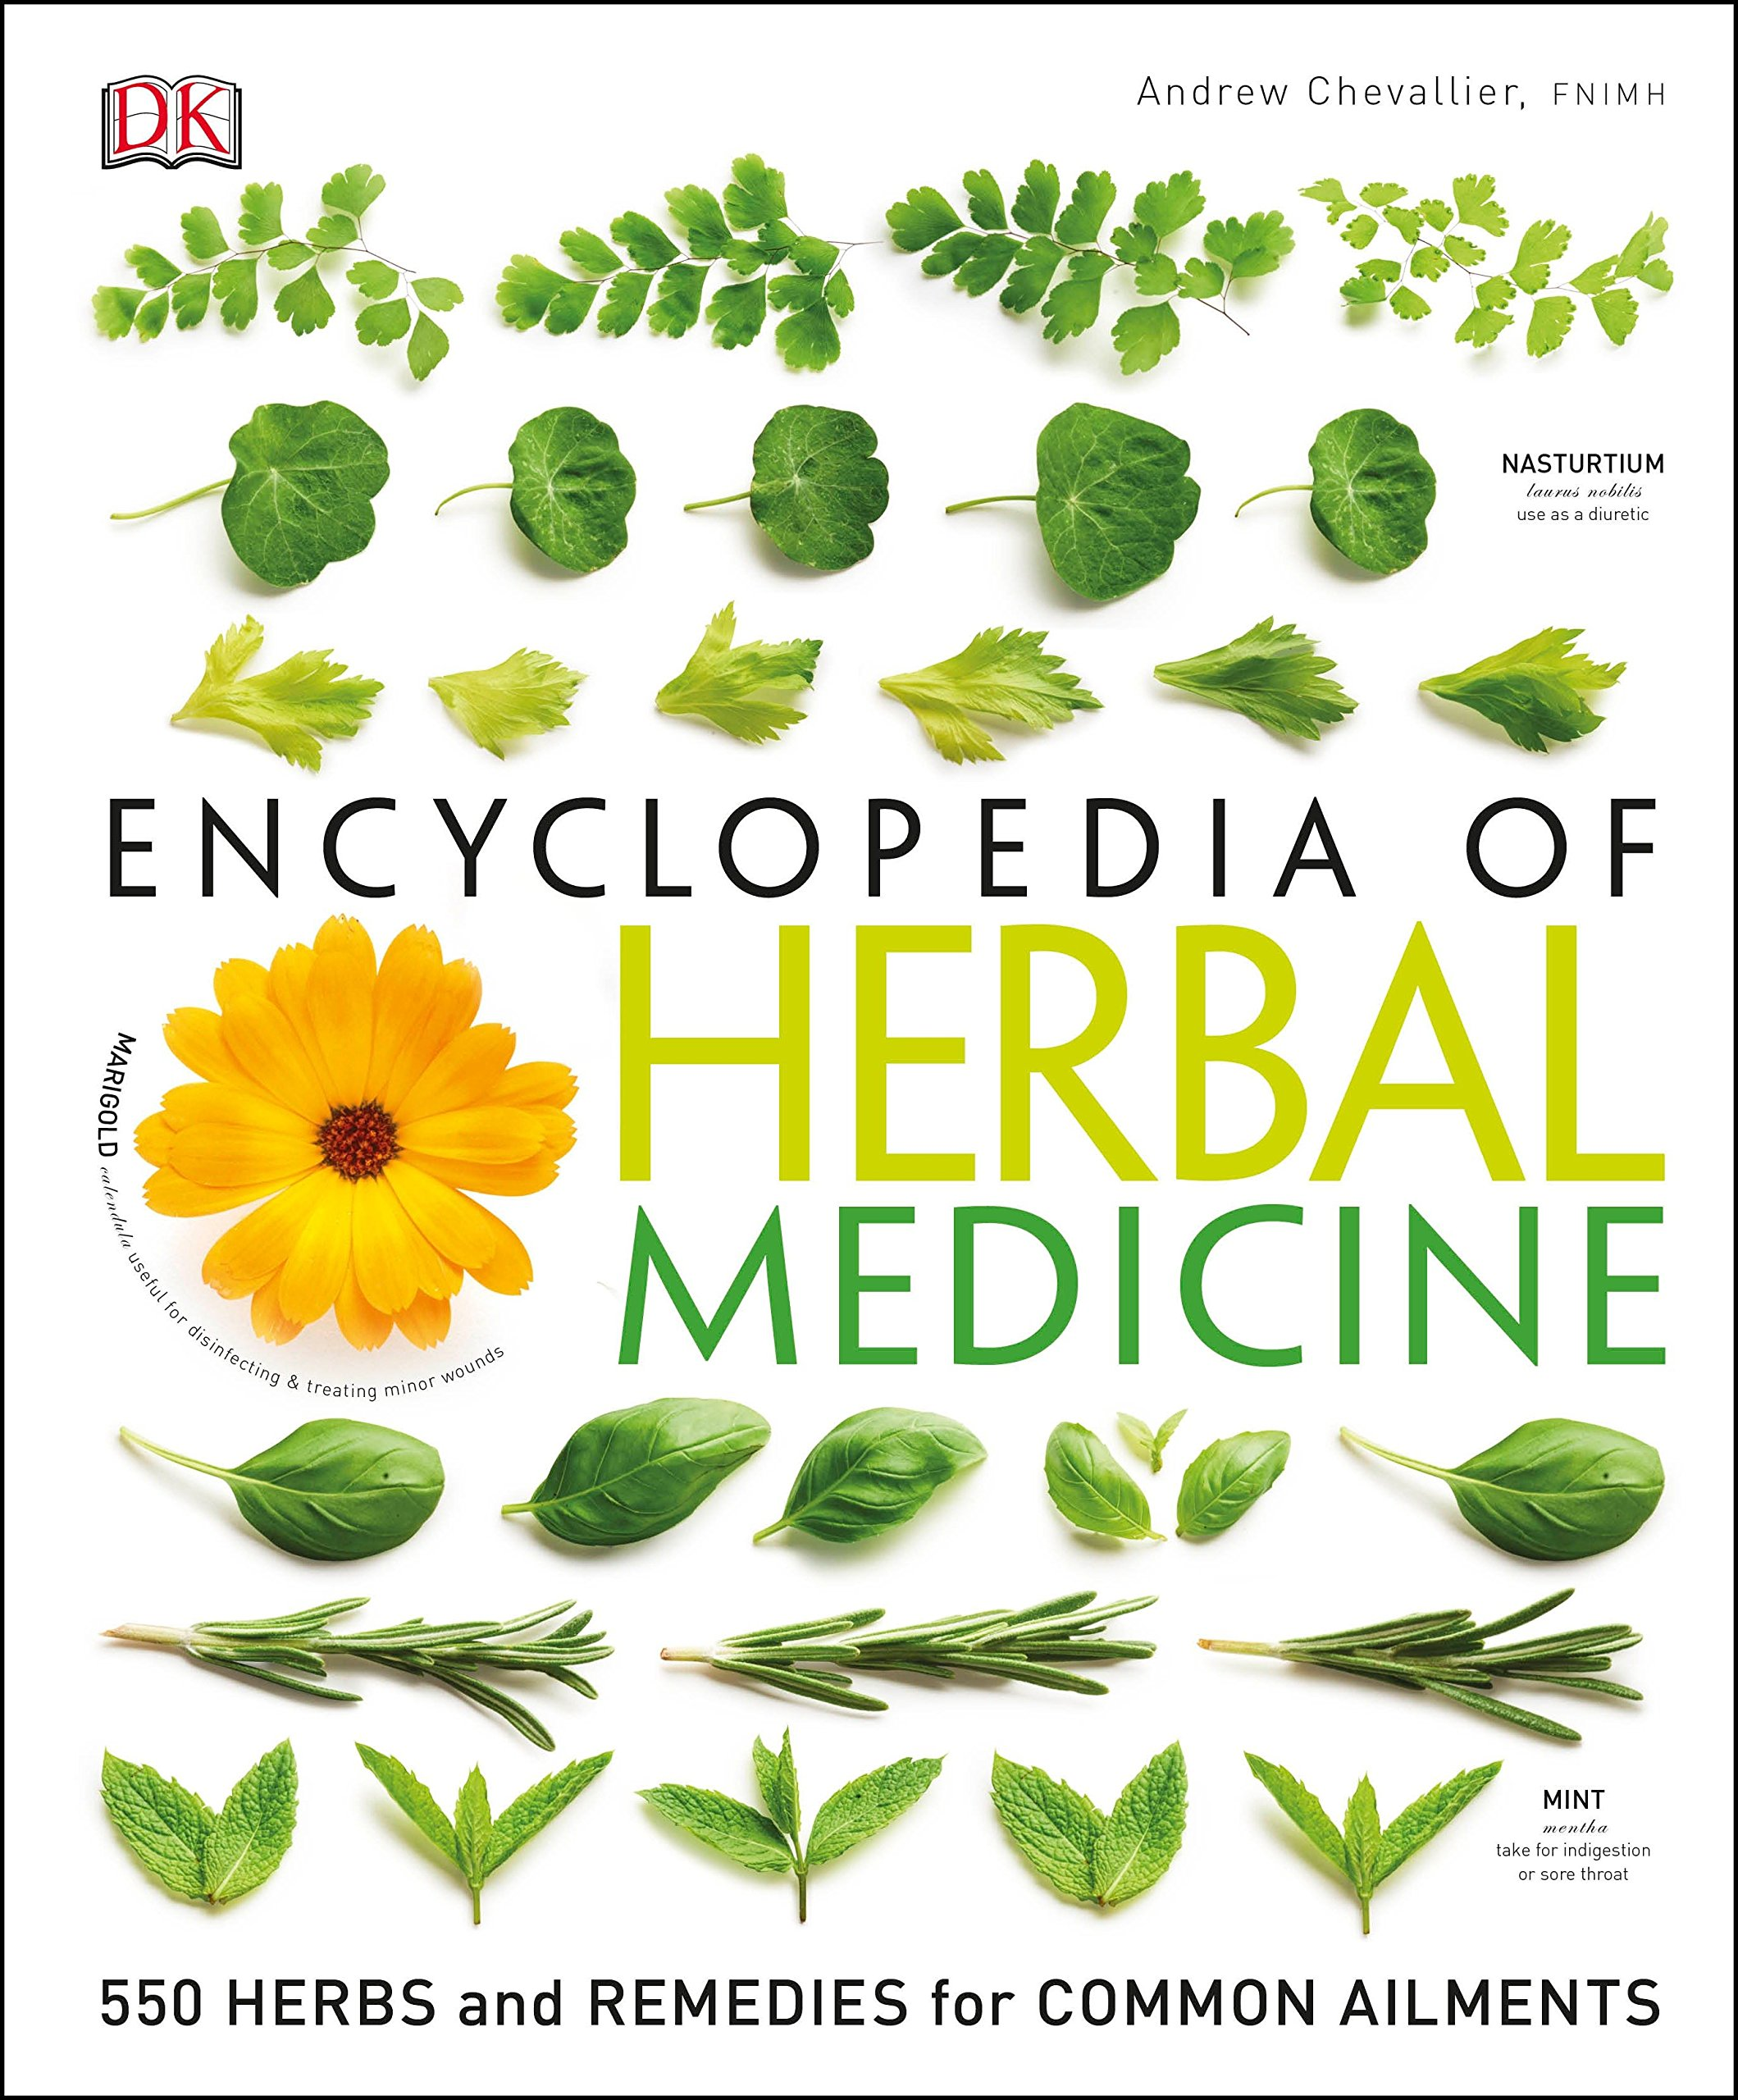 Encyclopedia of Herbal Medicine: 550 Herbs and Remedies for Common Ailments by Dk Pub